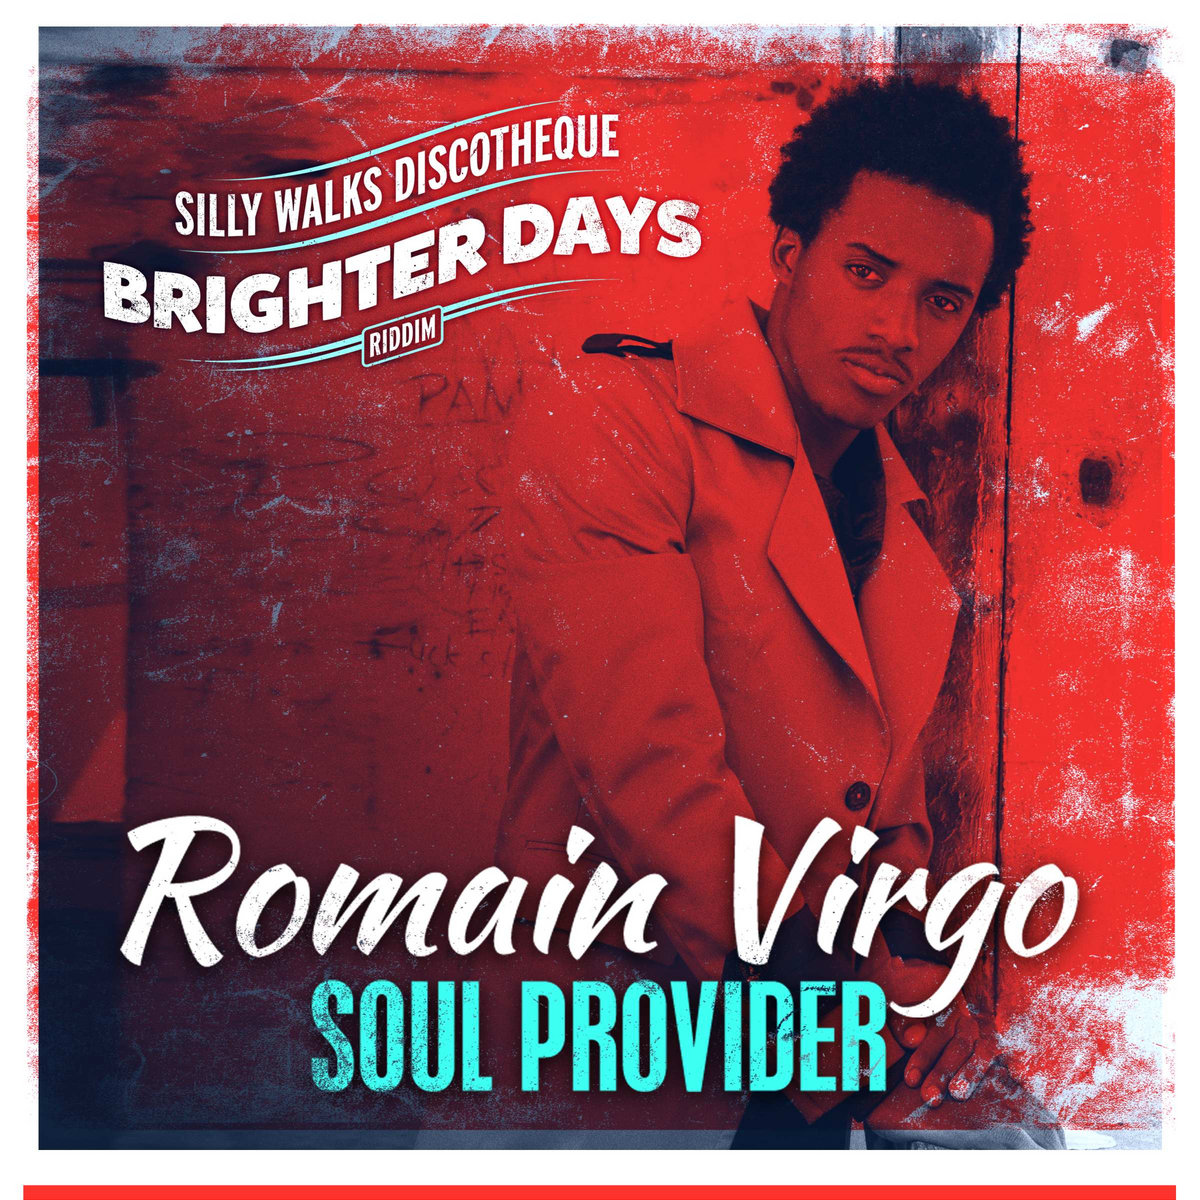 Soul Provider (Brighter Days Riddim) | Silly Walks Discotheque